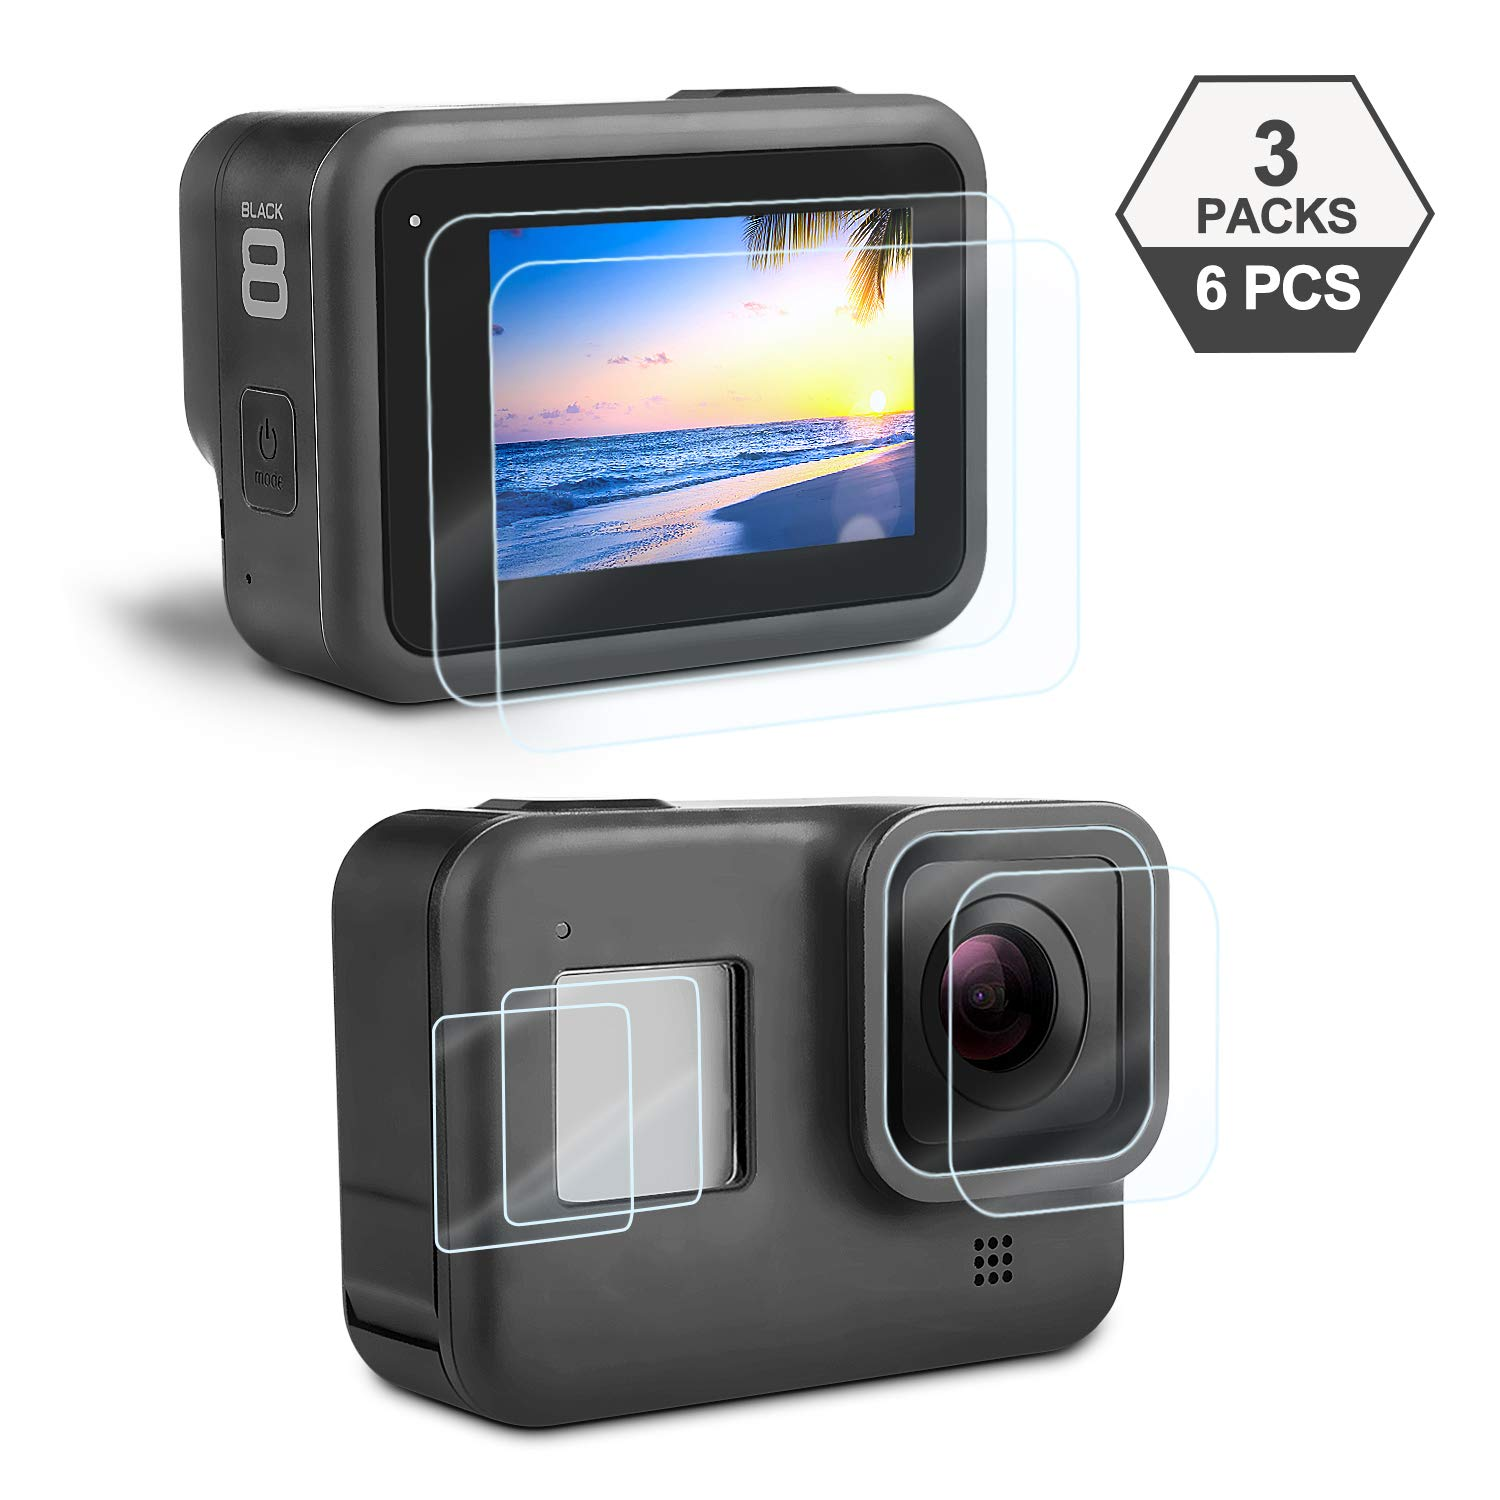 Screen Protector for GoPro Hero 8 Black, iTrunk 6 Pcs Ultra Clear Tempered Glass GoPro Hero 8 Screen Protector Lens Protector Accessories by iTrunk